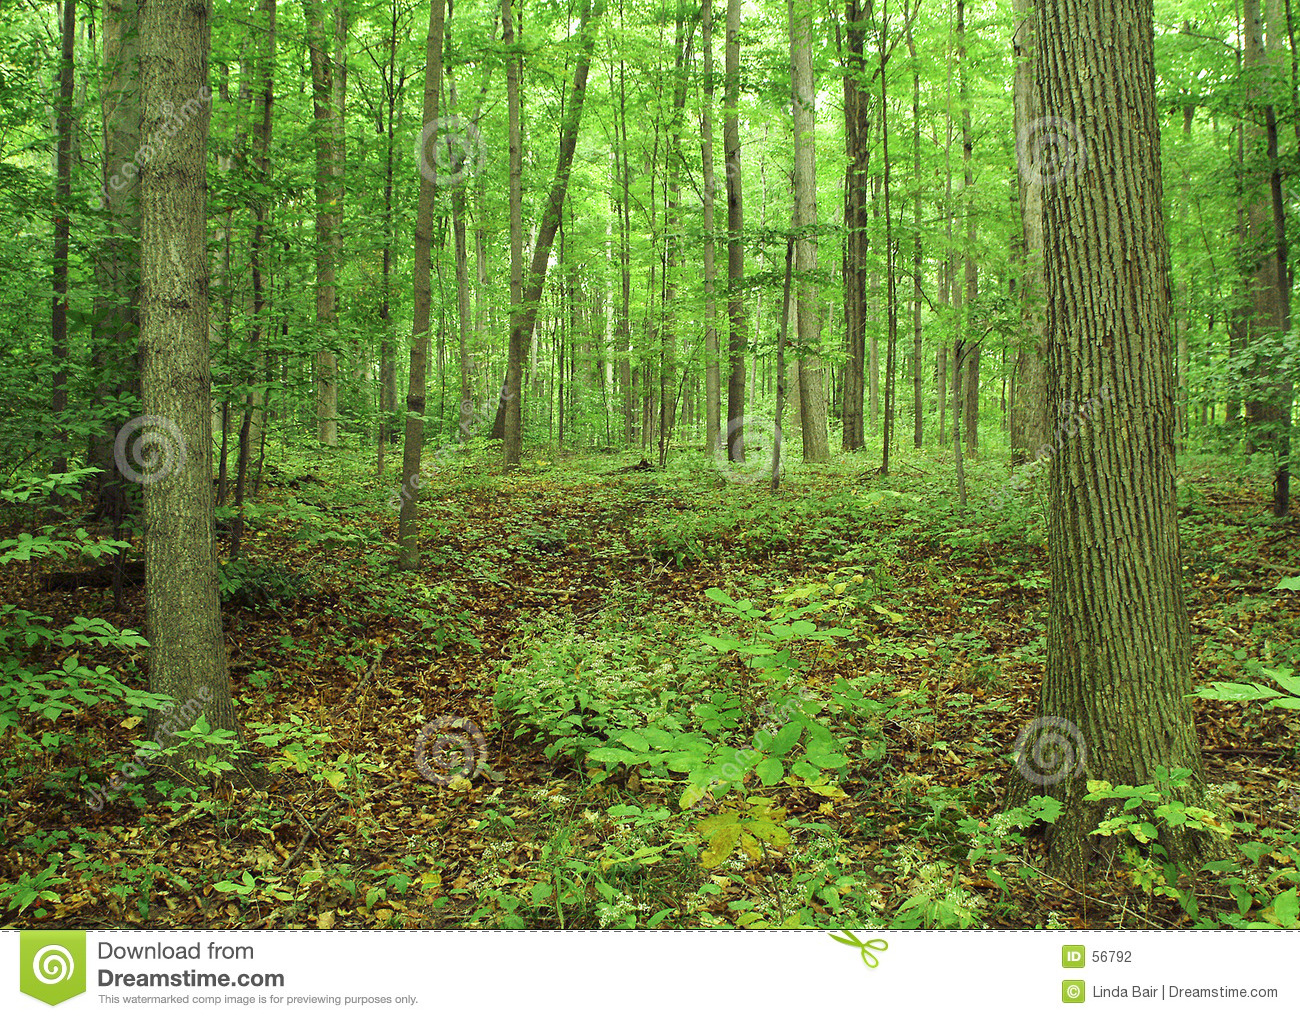 Download O bosque sagrado foto de stock. Imagem de ambiente, verde - 56792